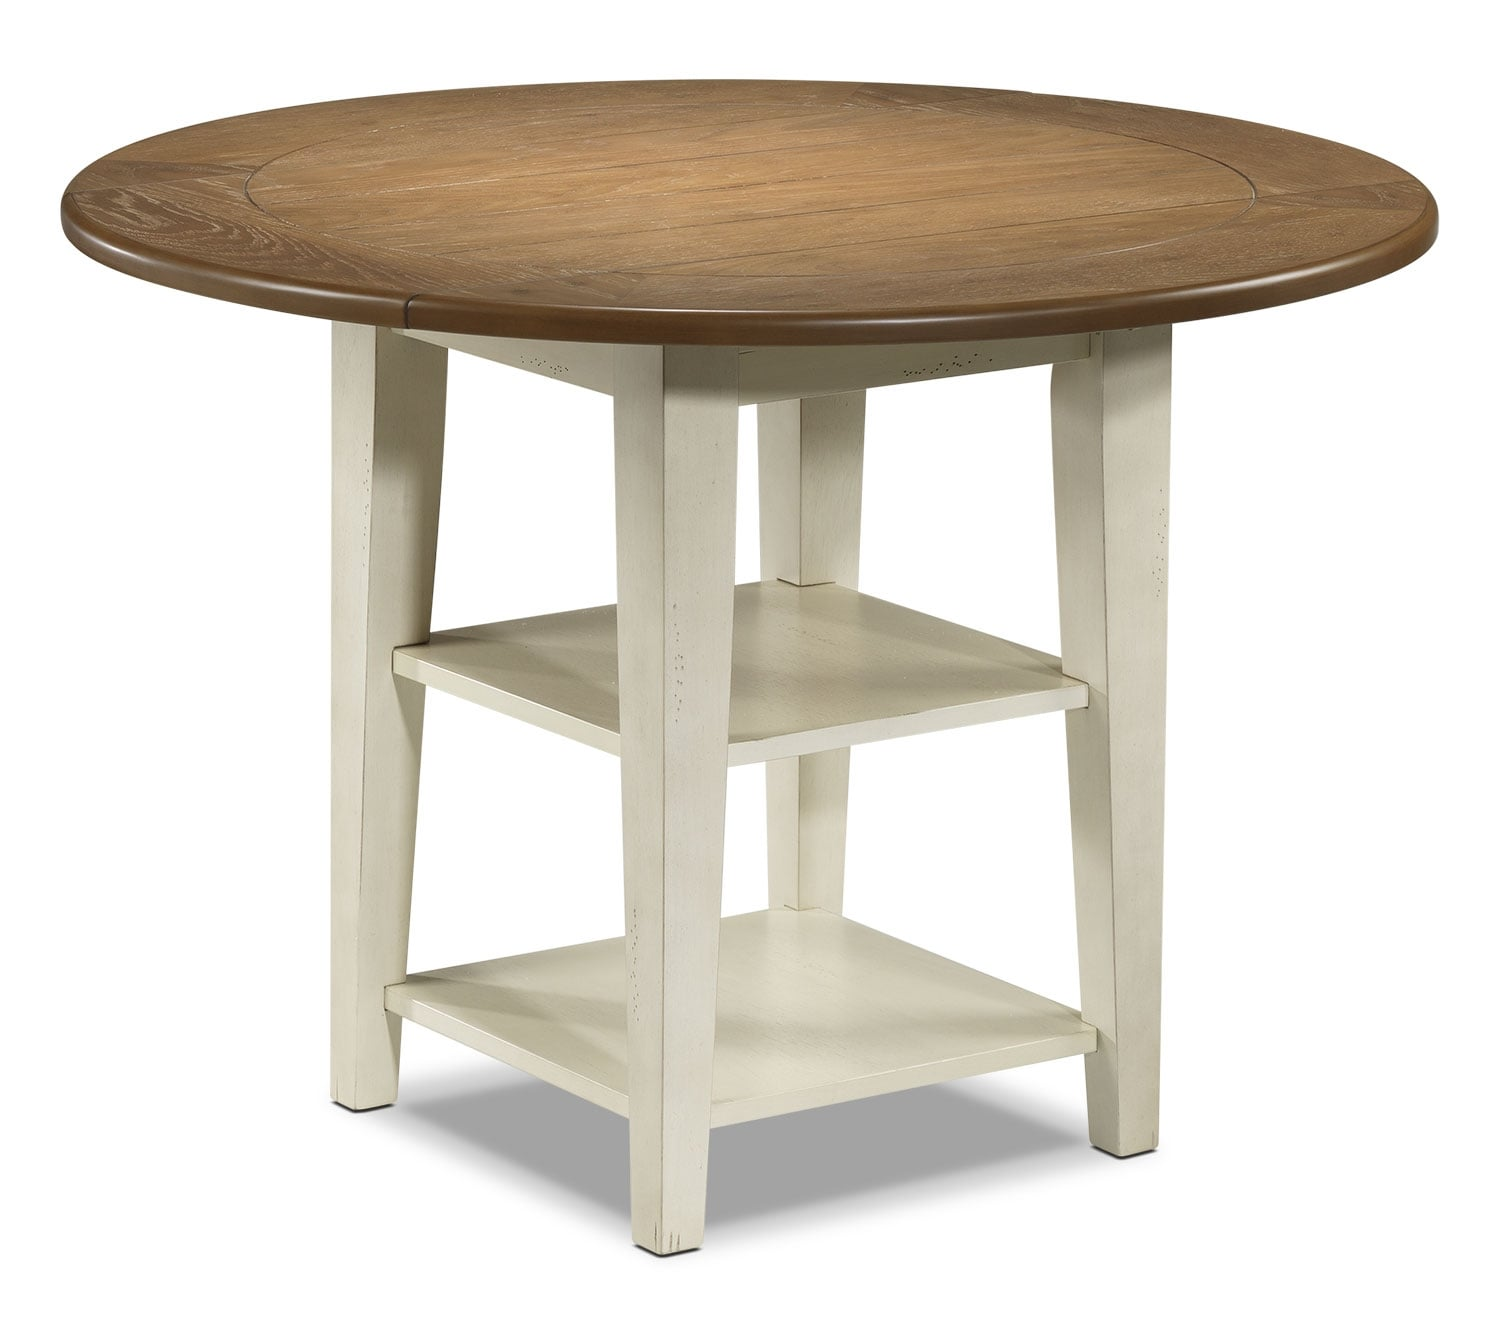 Casual Dining Room Furniture - Fresco Table - Driftwood, Cream